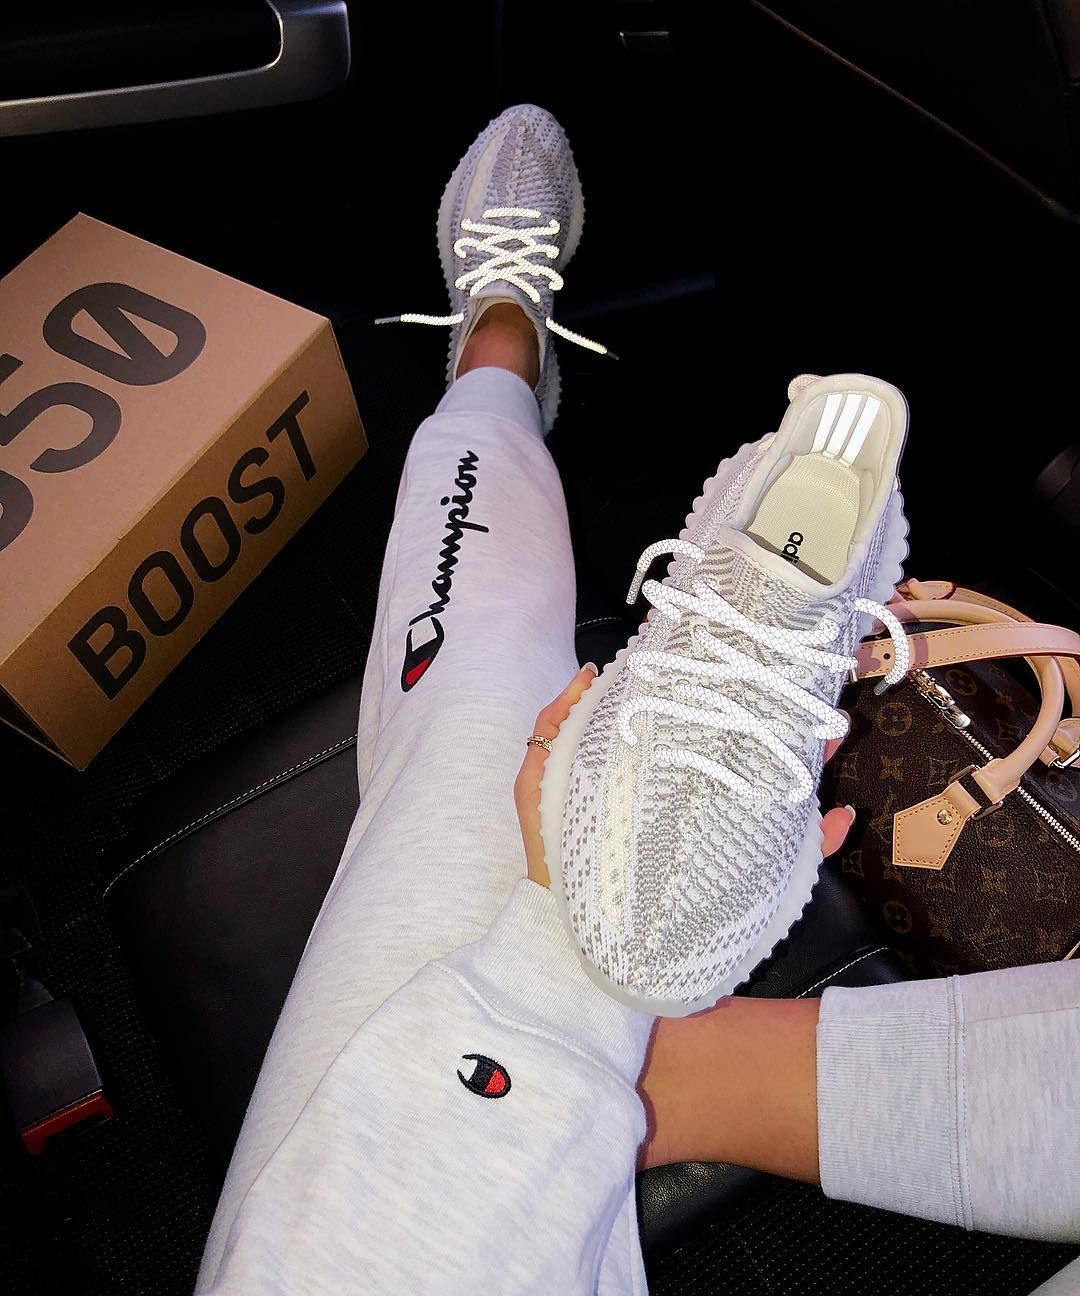 Fanamss on Instagram: Yeezy 350 static available at